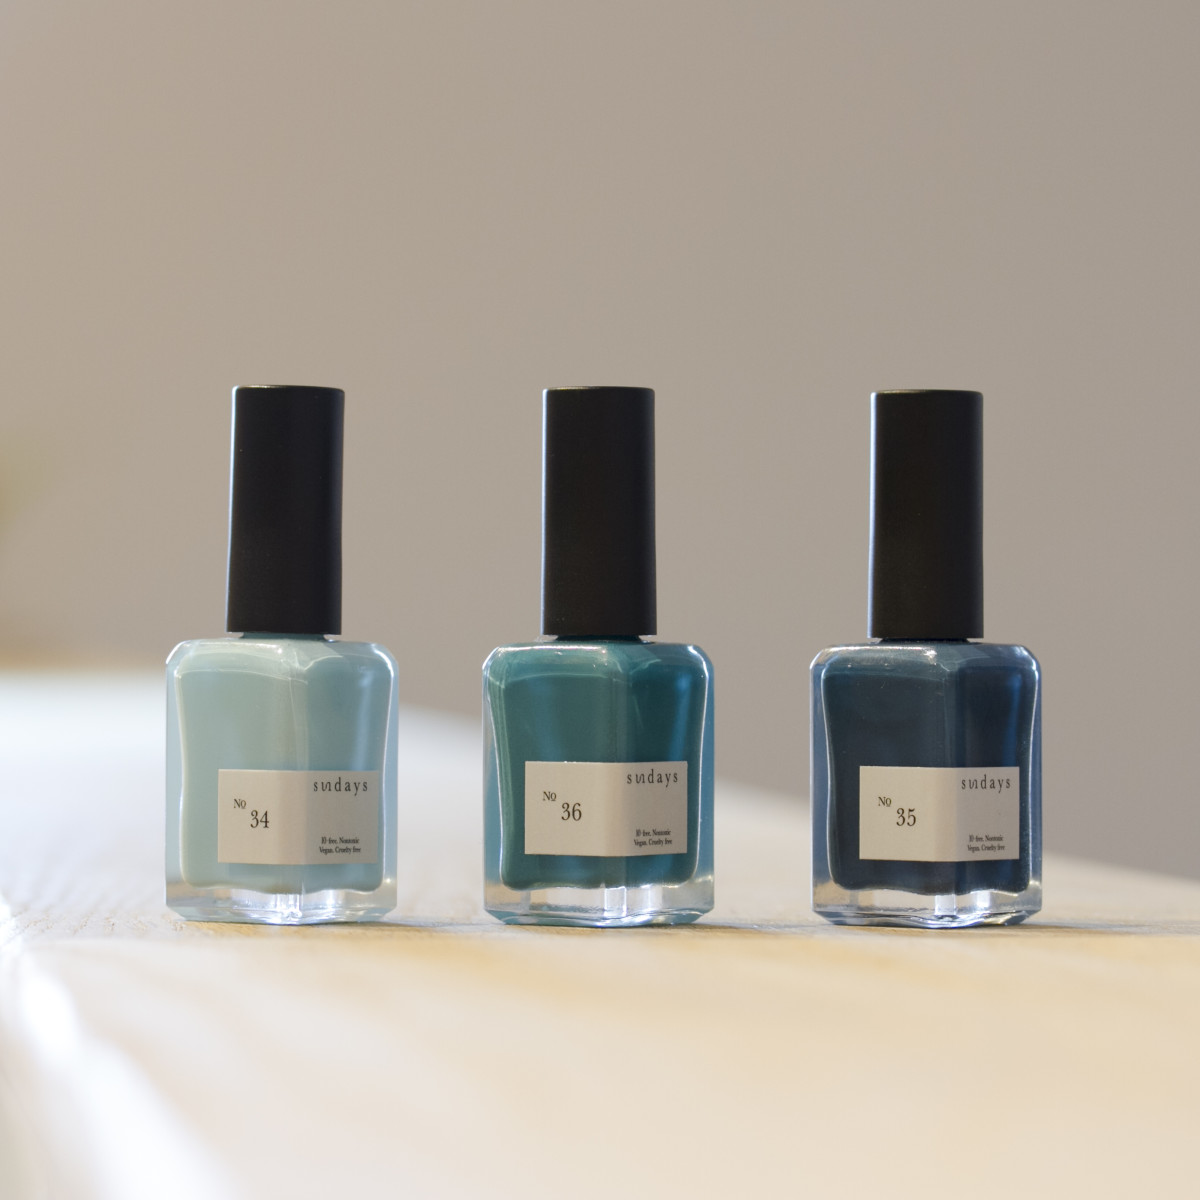 Three nail polishes from Sundays's product lineup. Photo: Sundays